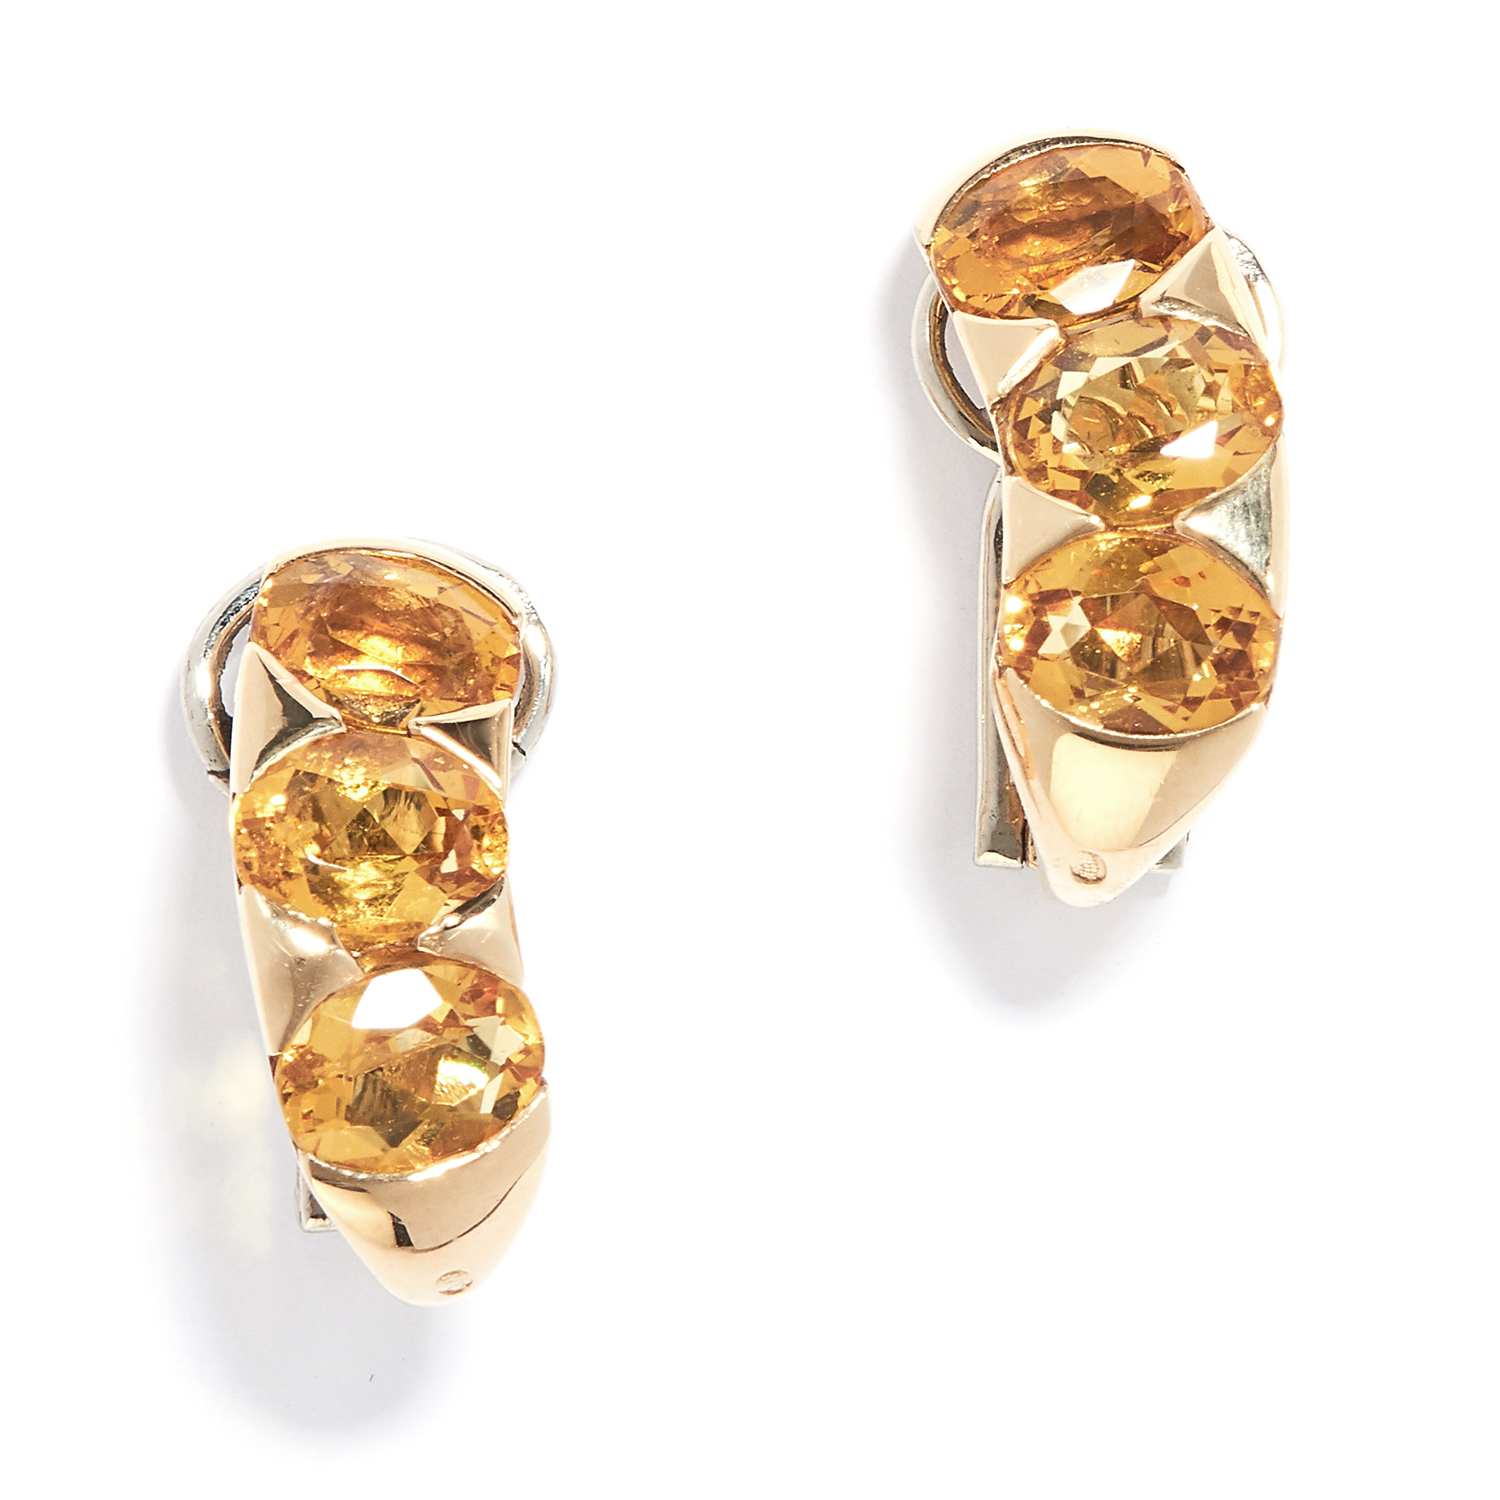 PAIR OF CITRINE CLIP EARRINGS, BULGARI in 18ct yellow gold, the hoop design set with a trio of